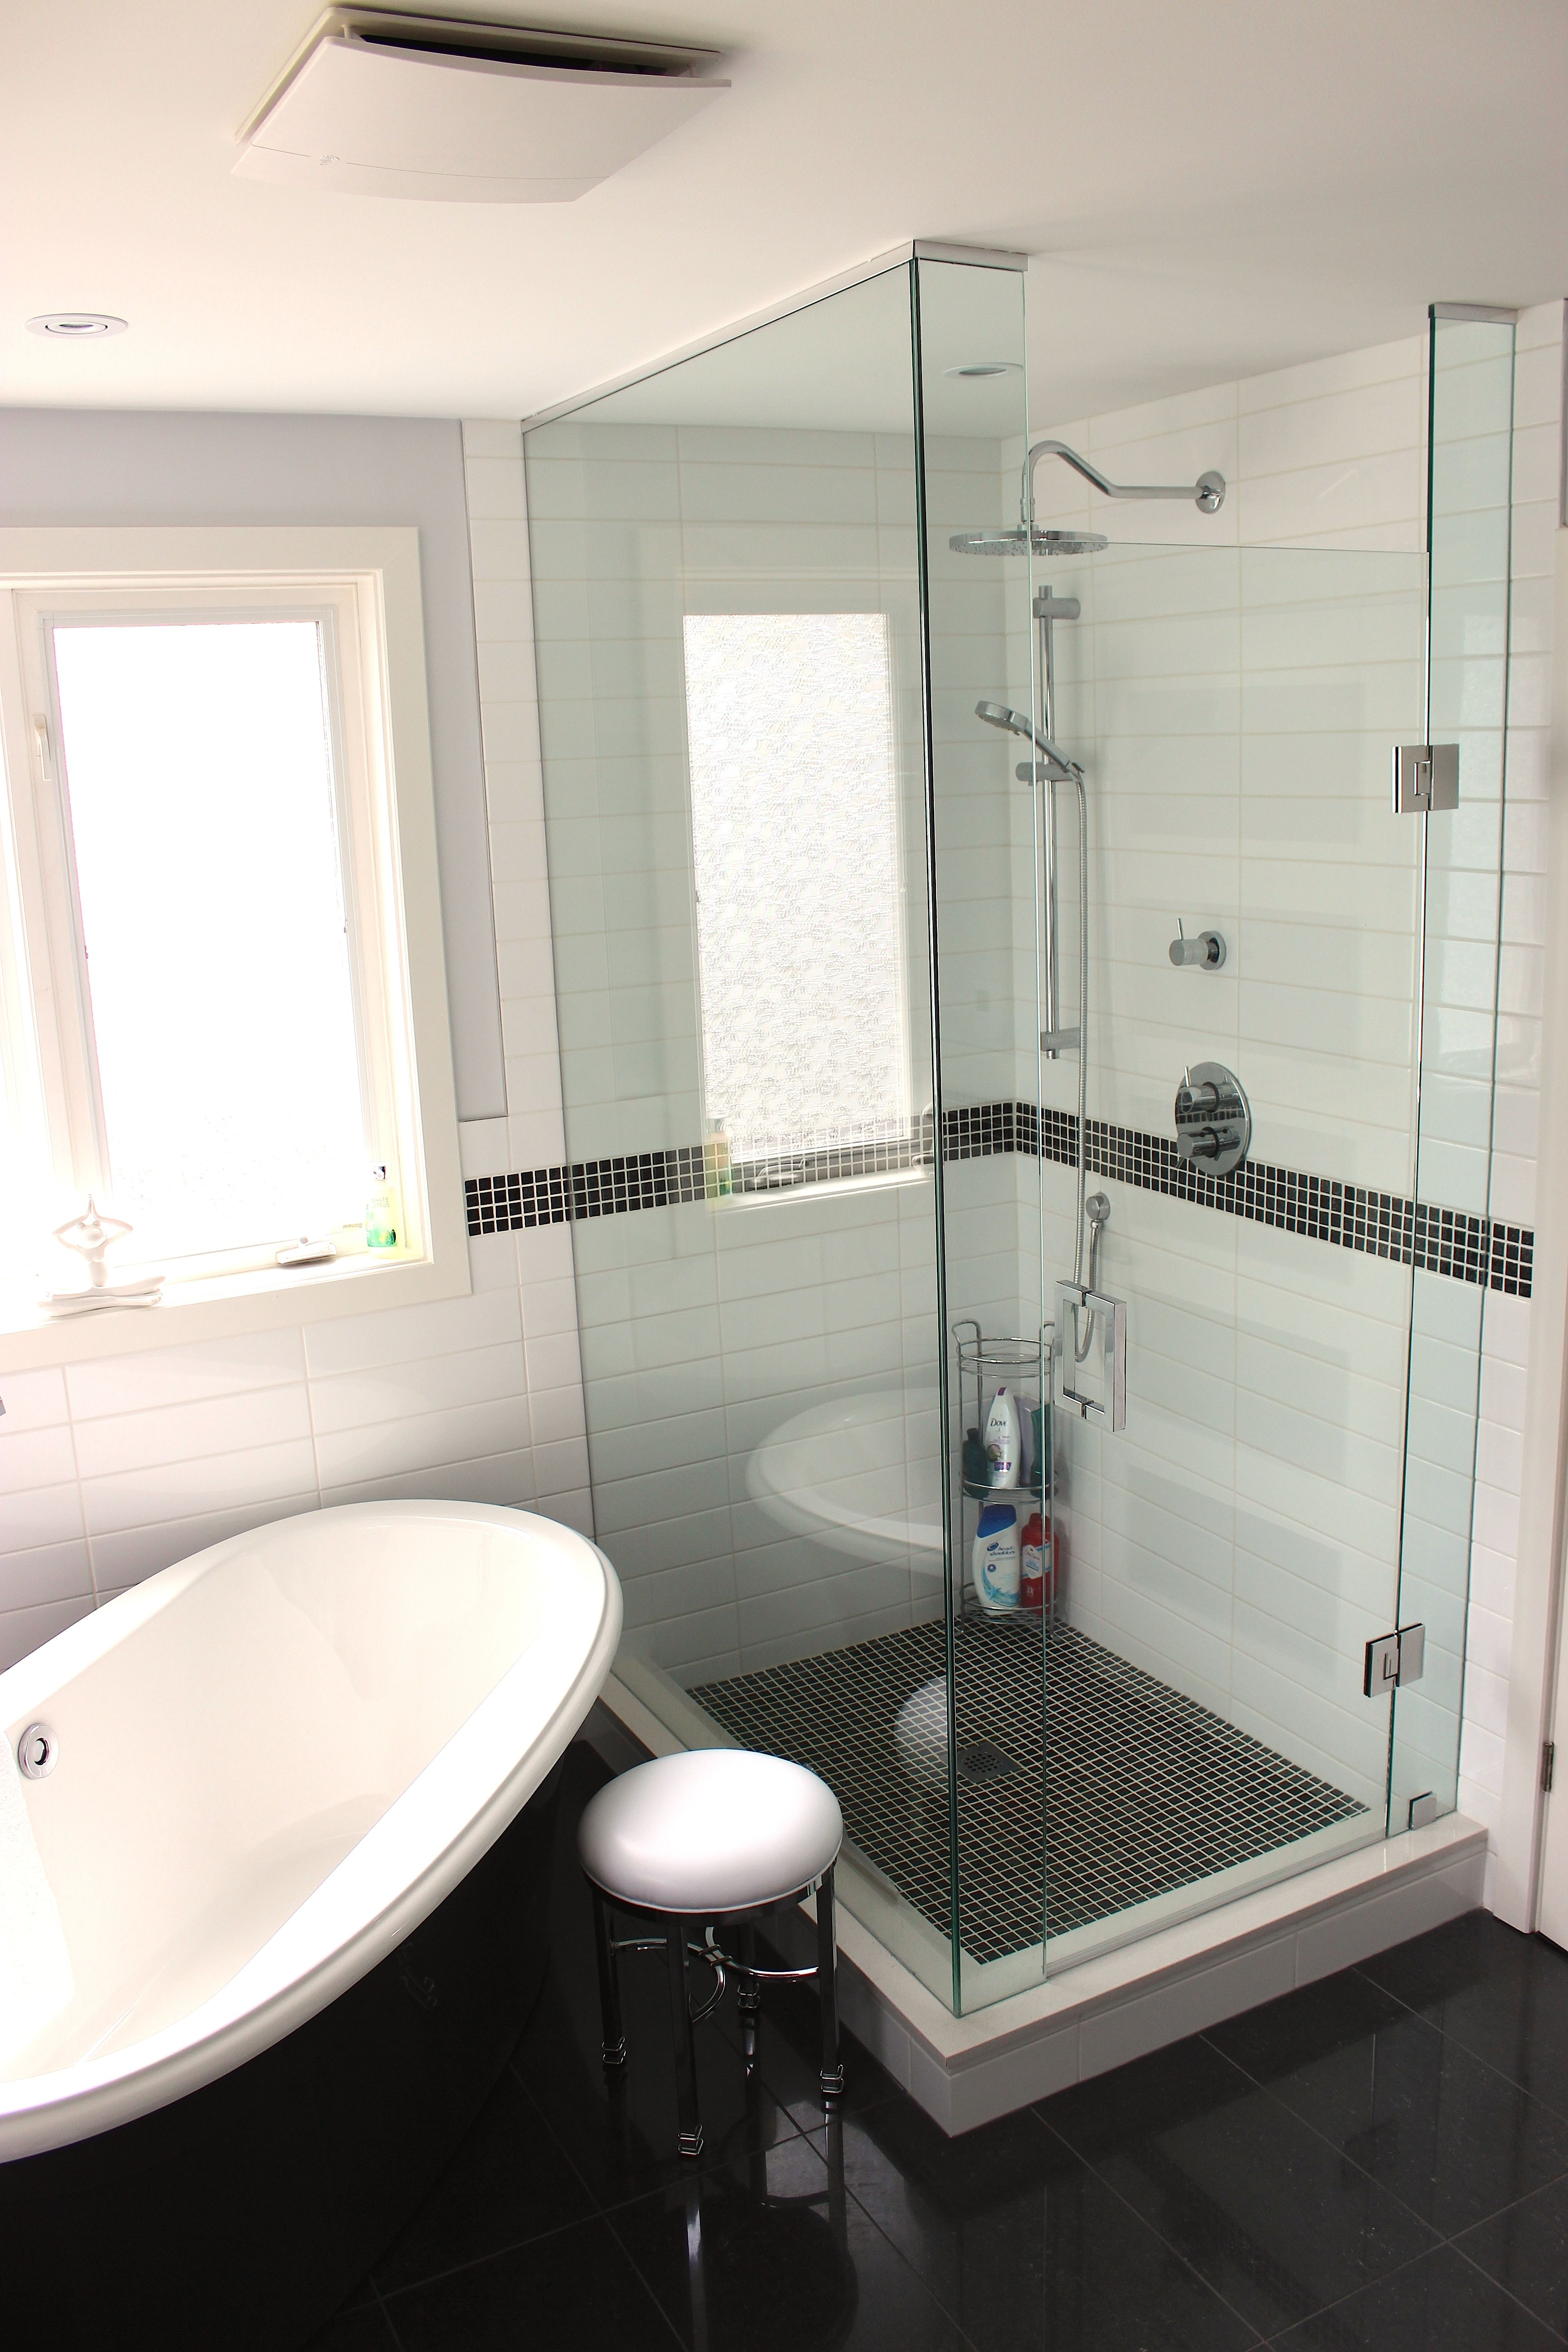 Freestanding Tub Side By Side With A Custom Stand Alone